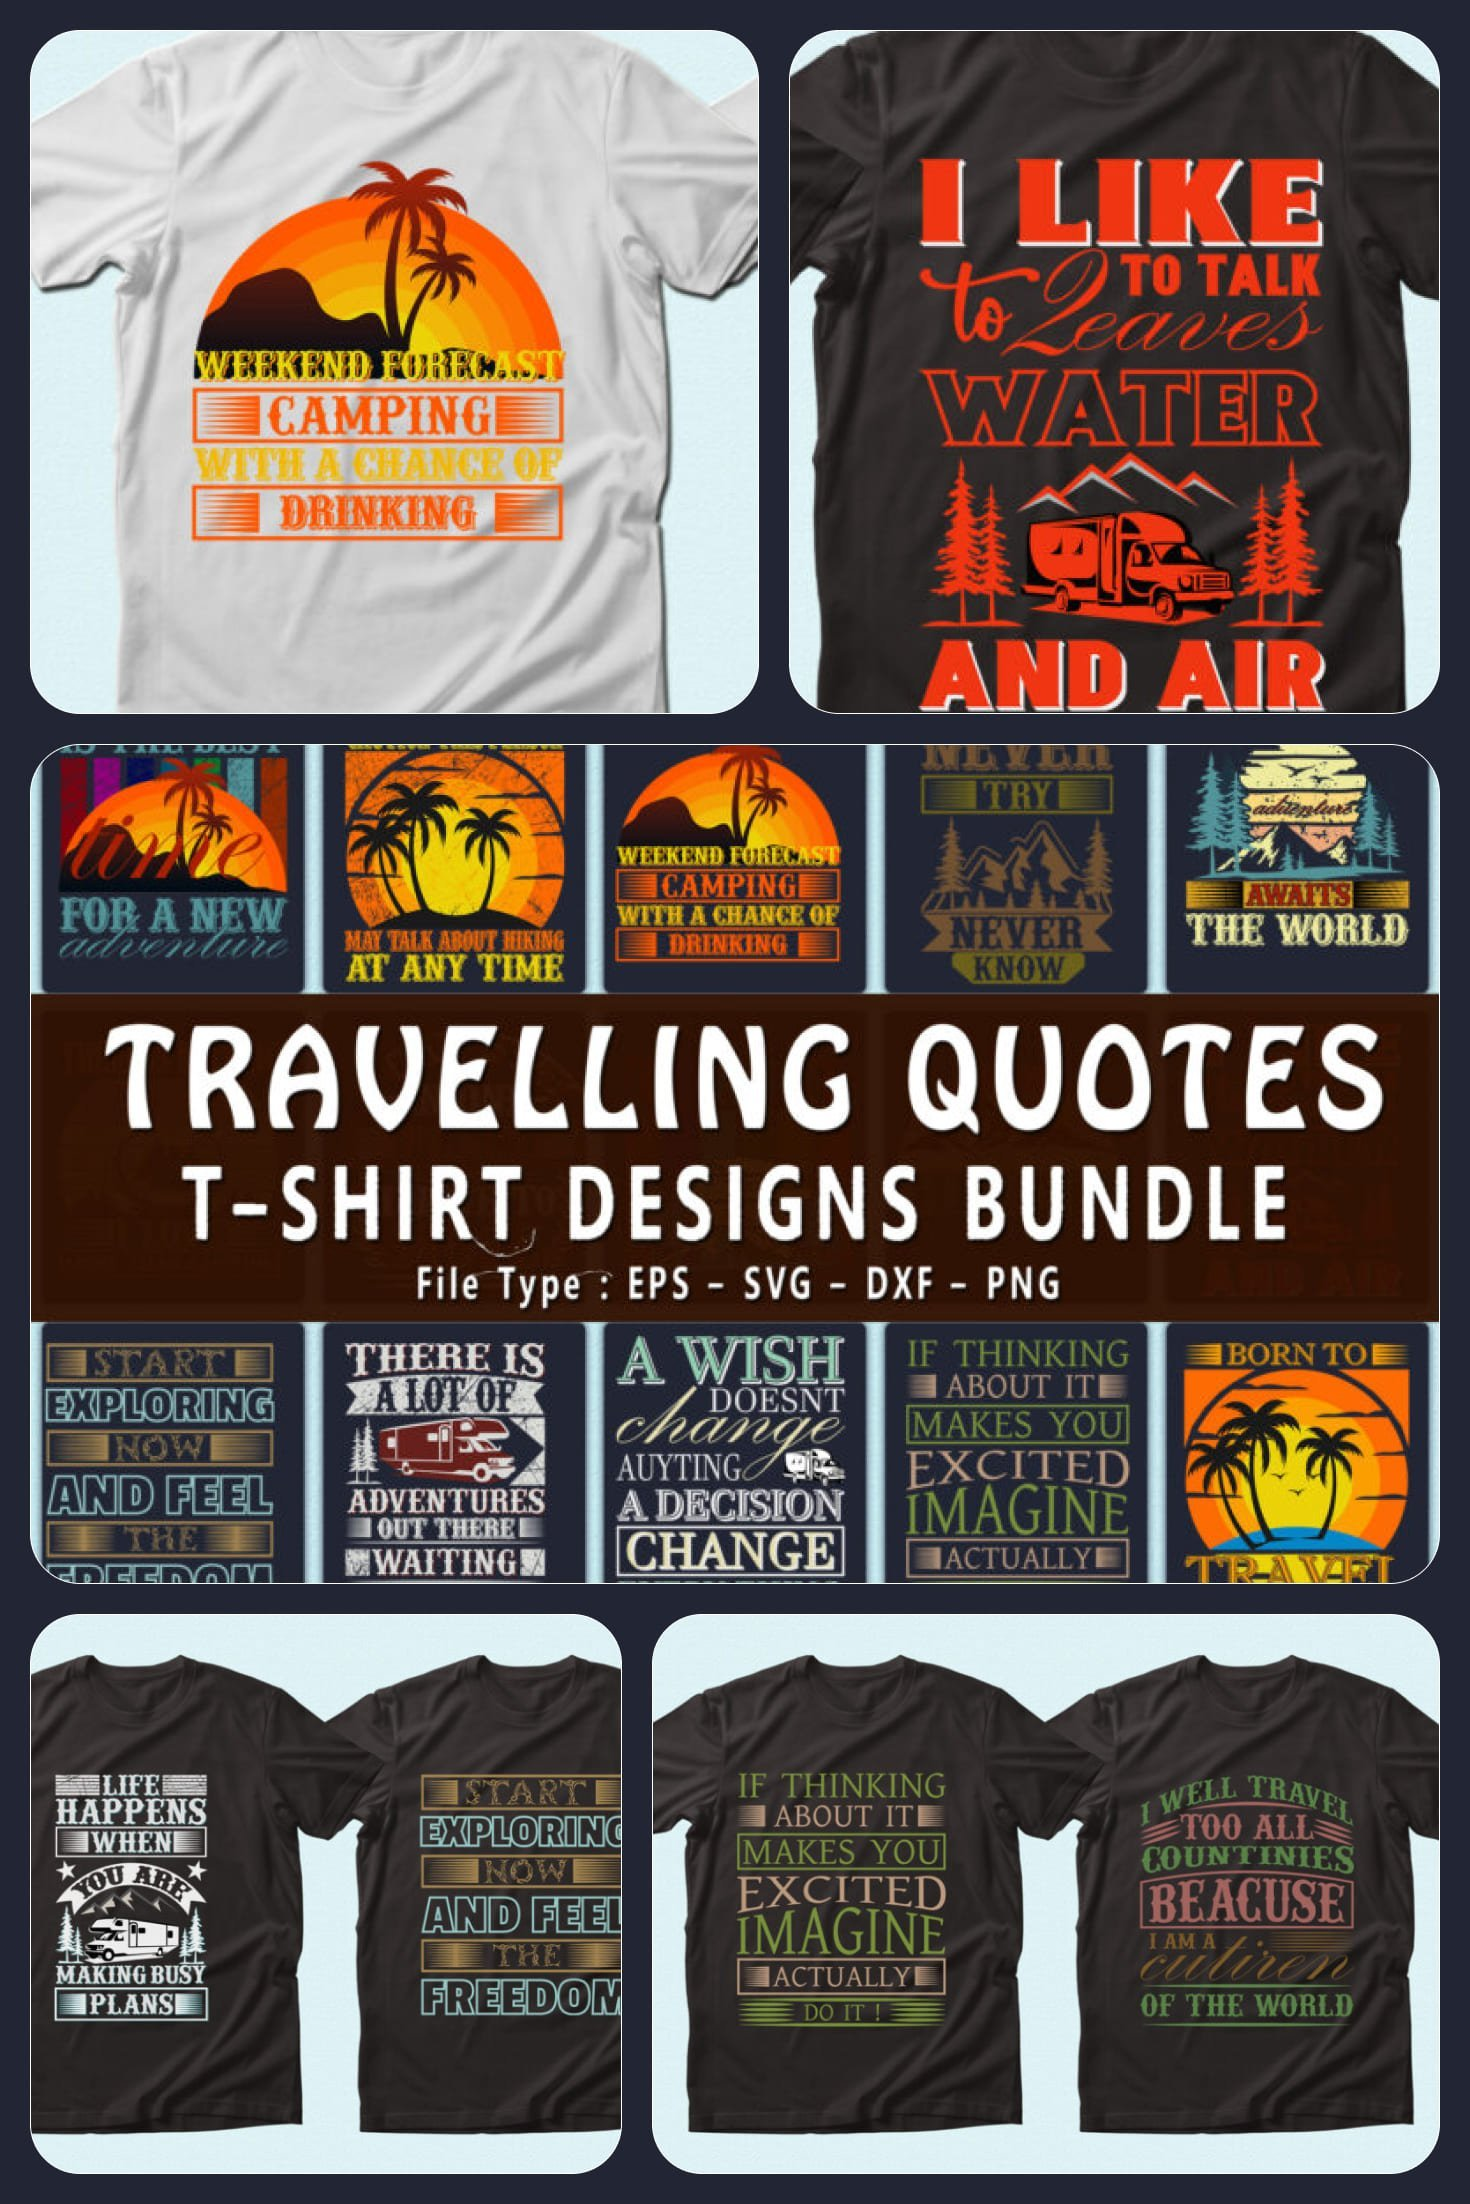 Traveling t-shirts for vacation.